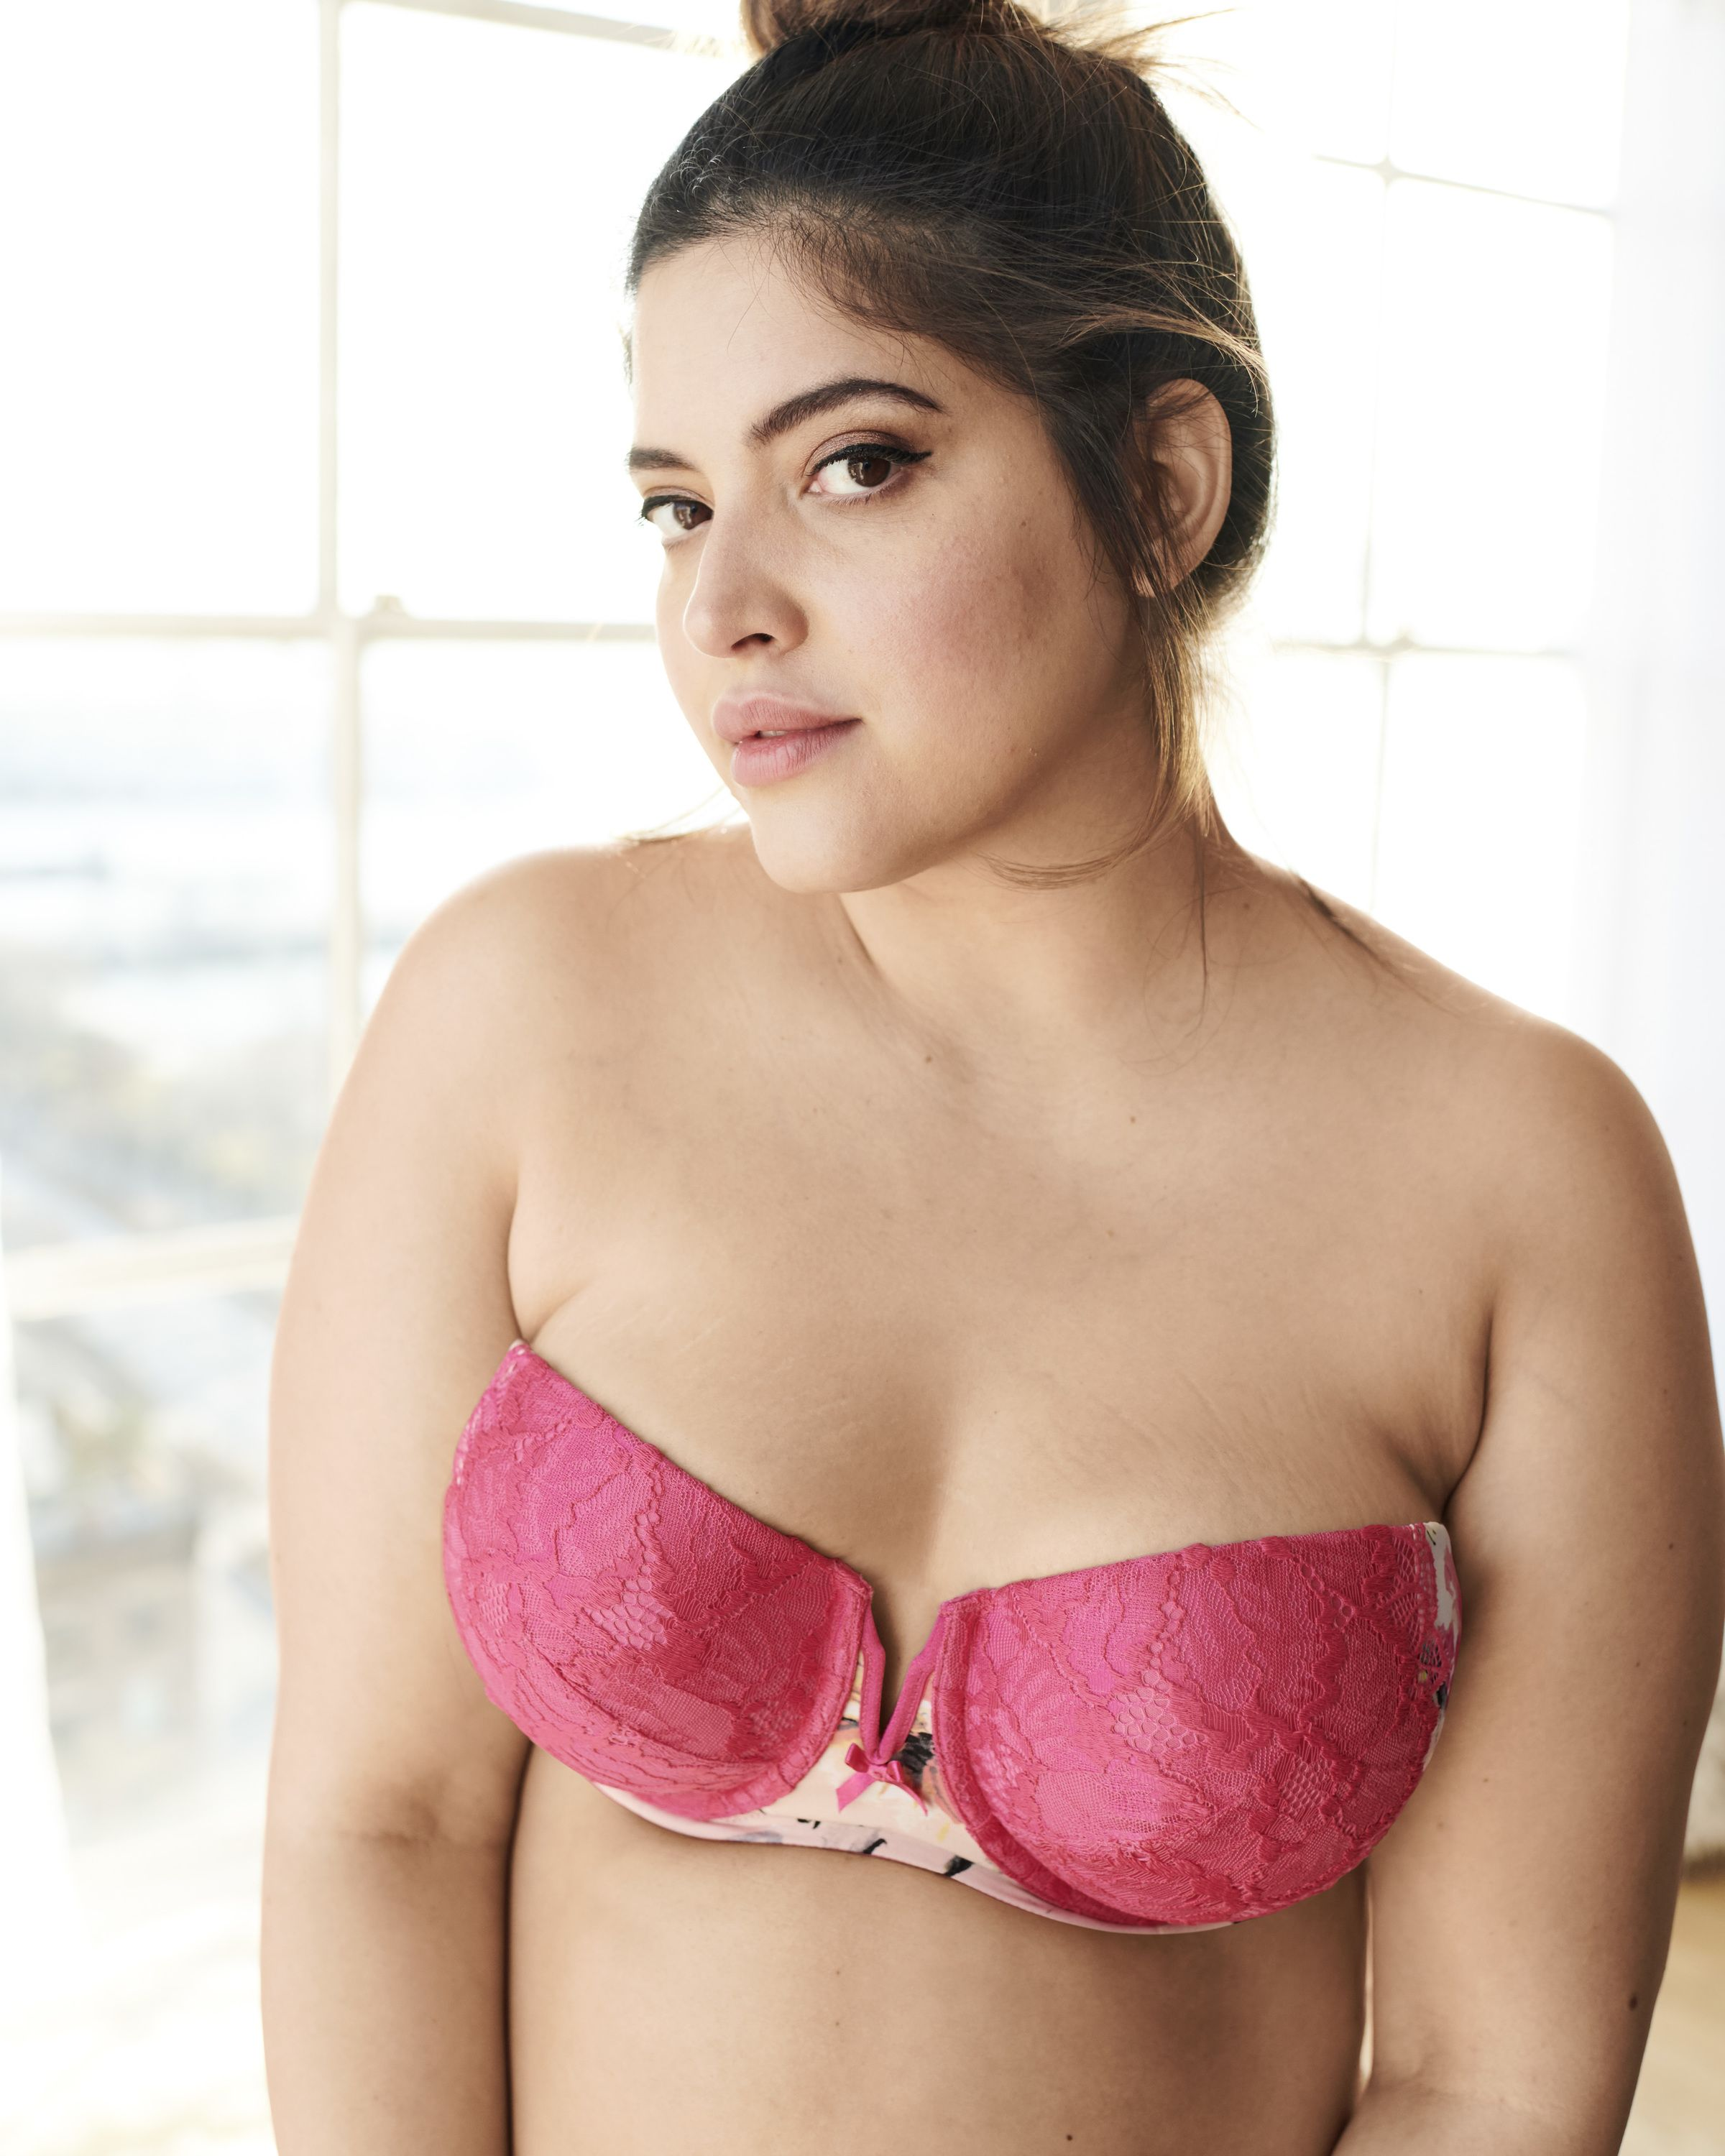 2cea45edb26 Your summer wardrobe's MVP: our Multi-way Strapless bra. Wear it 7 ways  under the season's cutout tops and dresses.